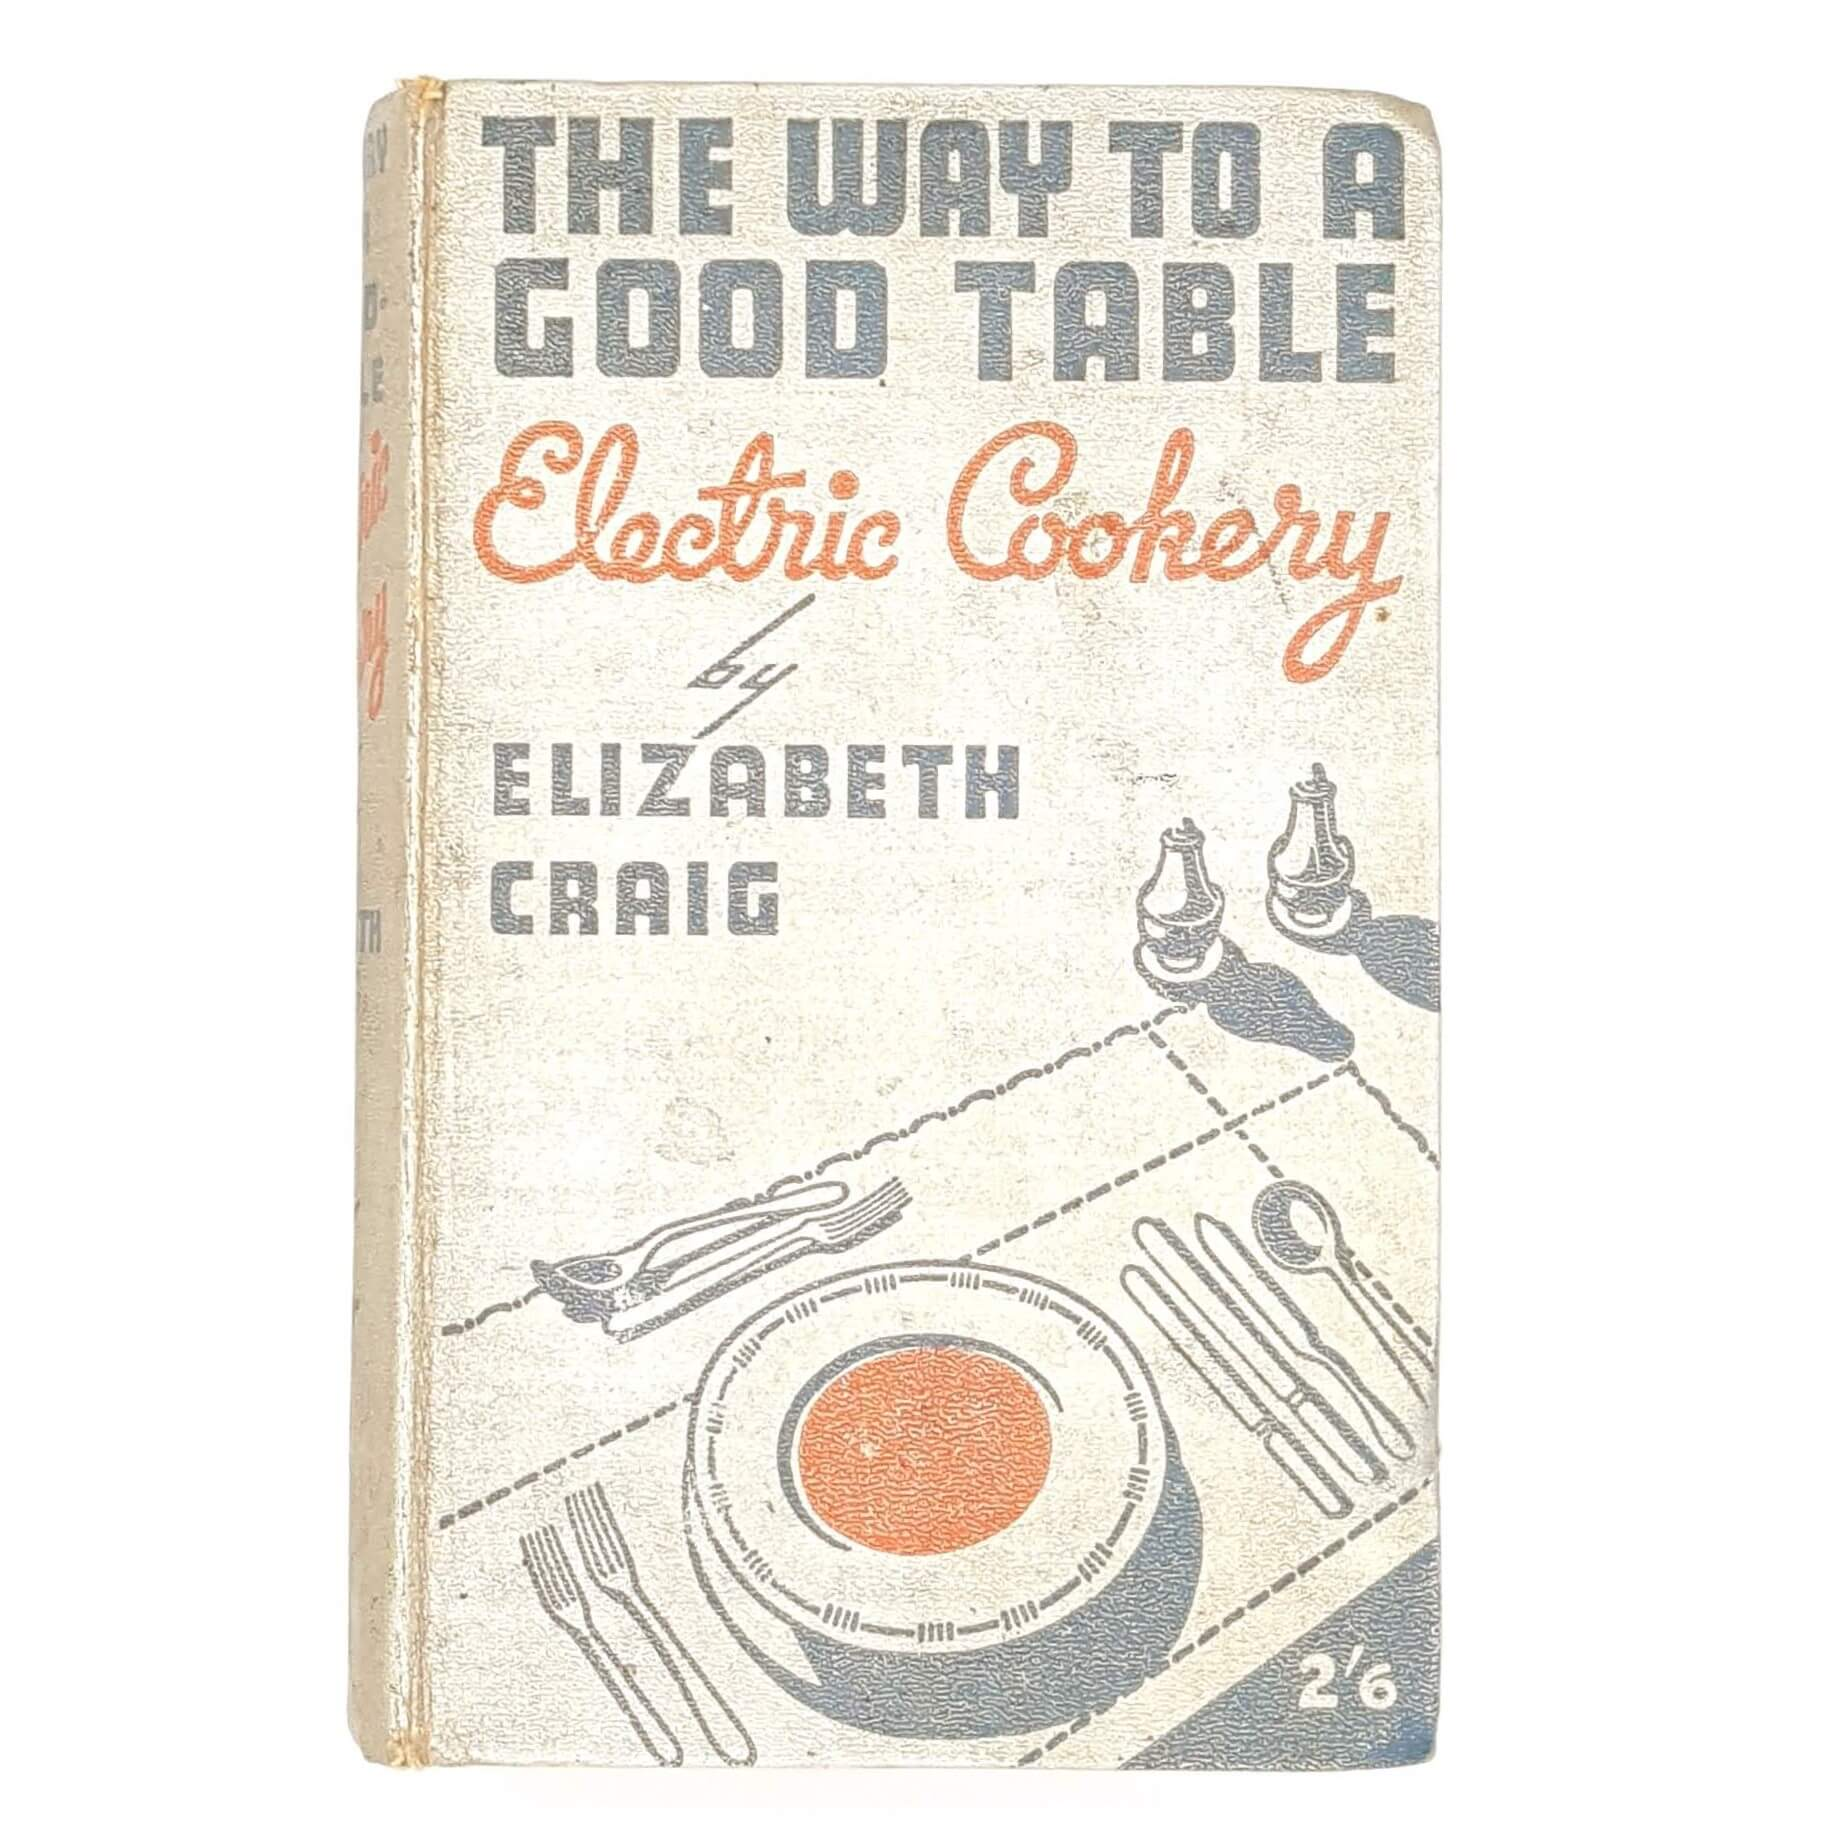 The-Way-to-a-Good-Table-Electric-Cookery-by-Elizabeth-Craig